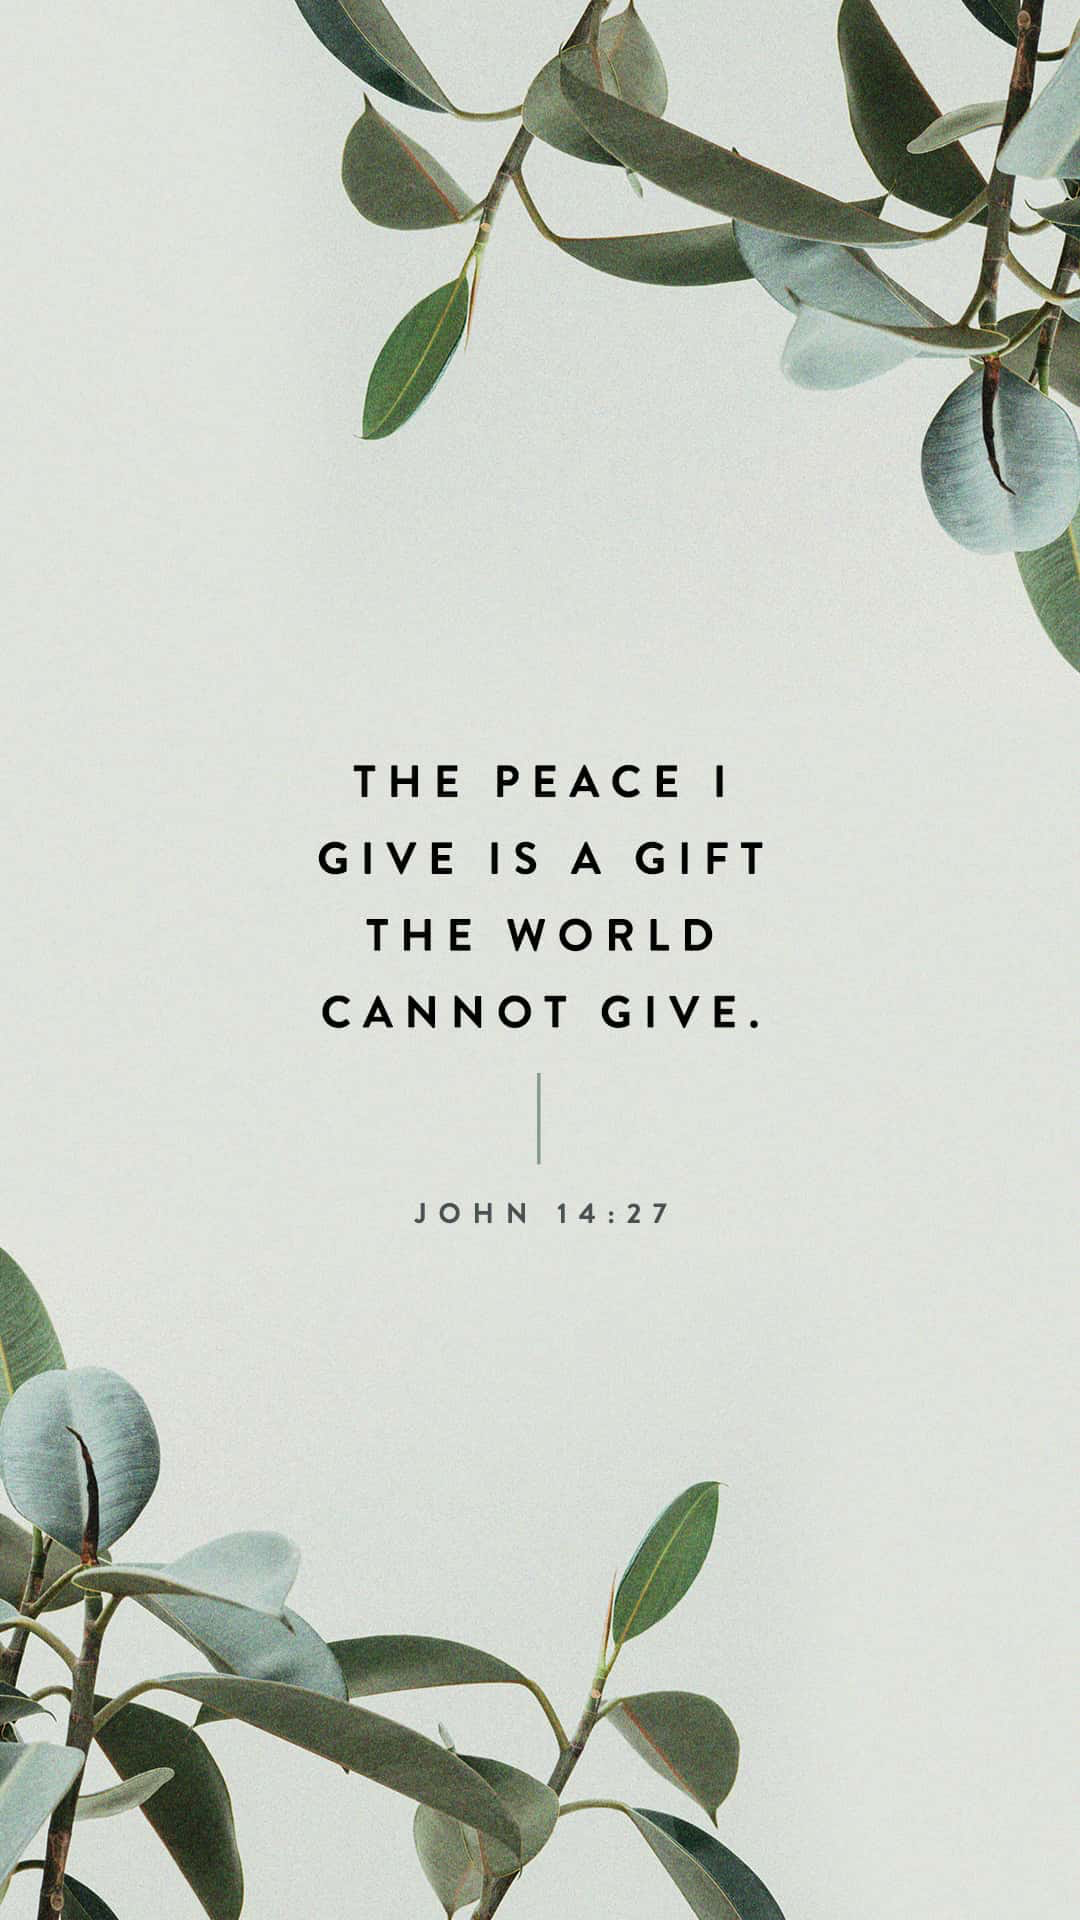 John 14:27 Peace I leave with you, my peace I give unto you: not as the world giveth, give I unto you. Let not your heart be troubled, neither let it be afraid.   King James Version (KJV)   Download The Bible App Now